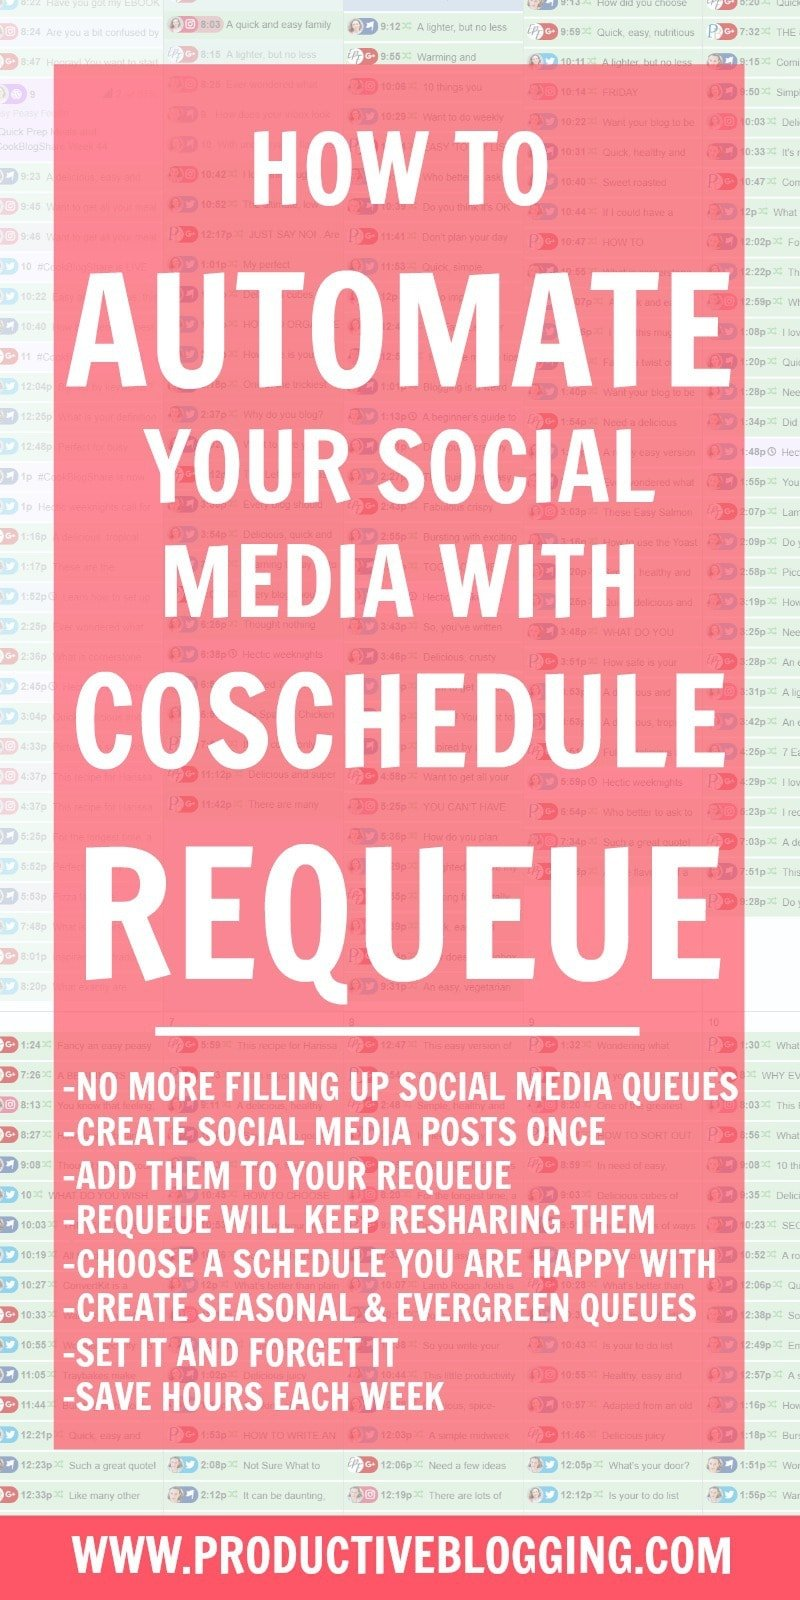 How to automate your social media with CoSchedule ReQueue